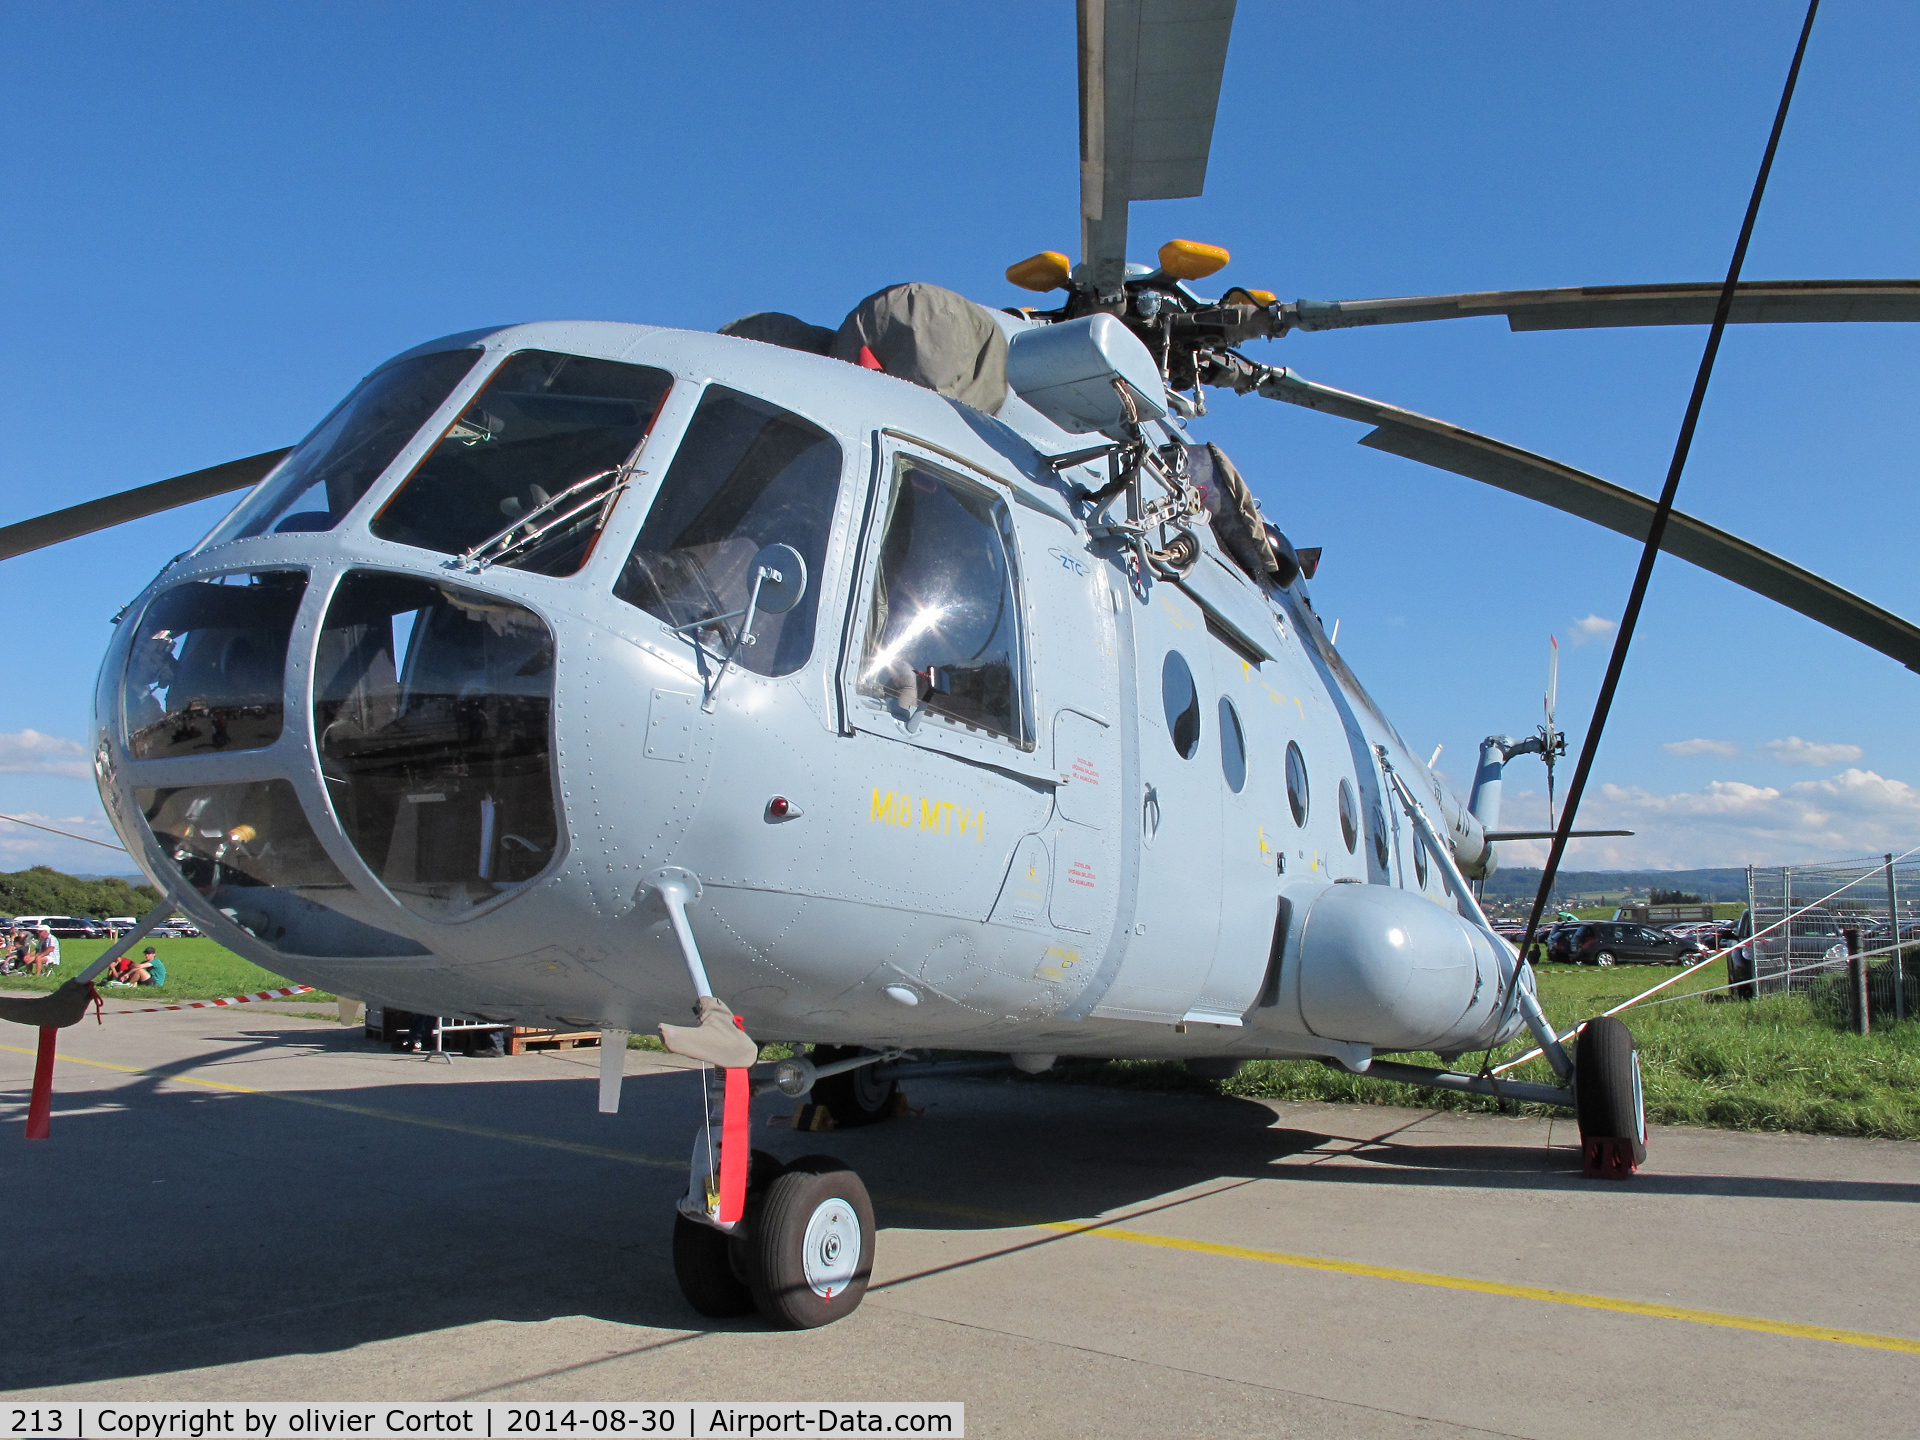 213, Mil Mi-8MTV-1 Hip C/N 96055, Air 14